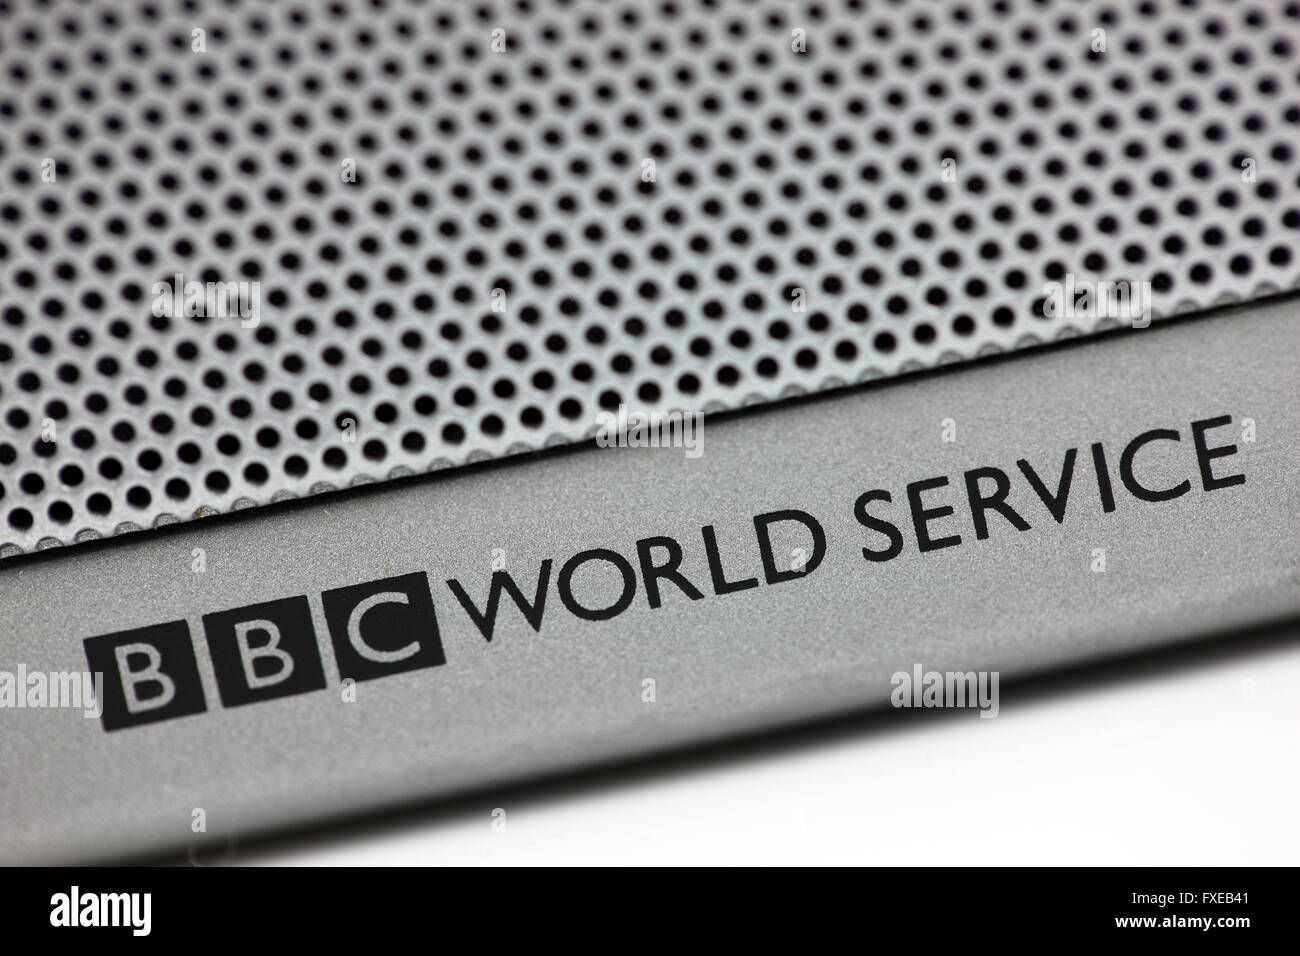 BBC World Service on a  radio transmitter showing it could receive the shortwave communication. - Stock Image